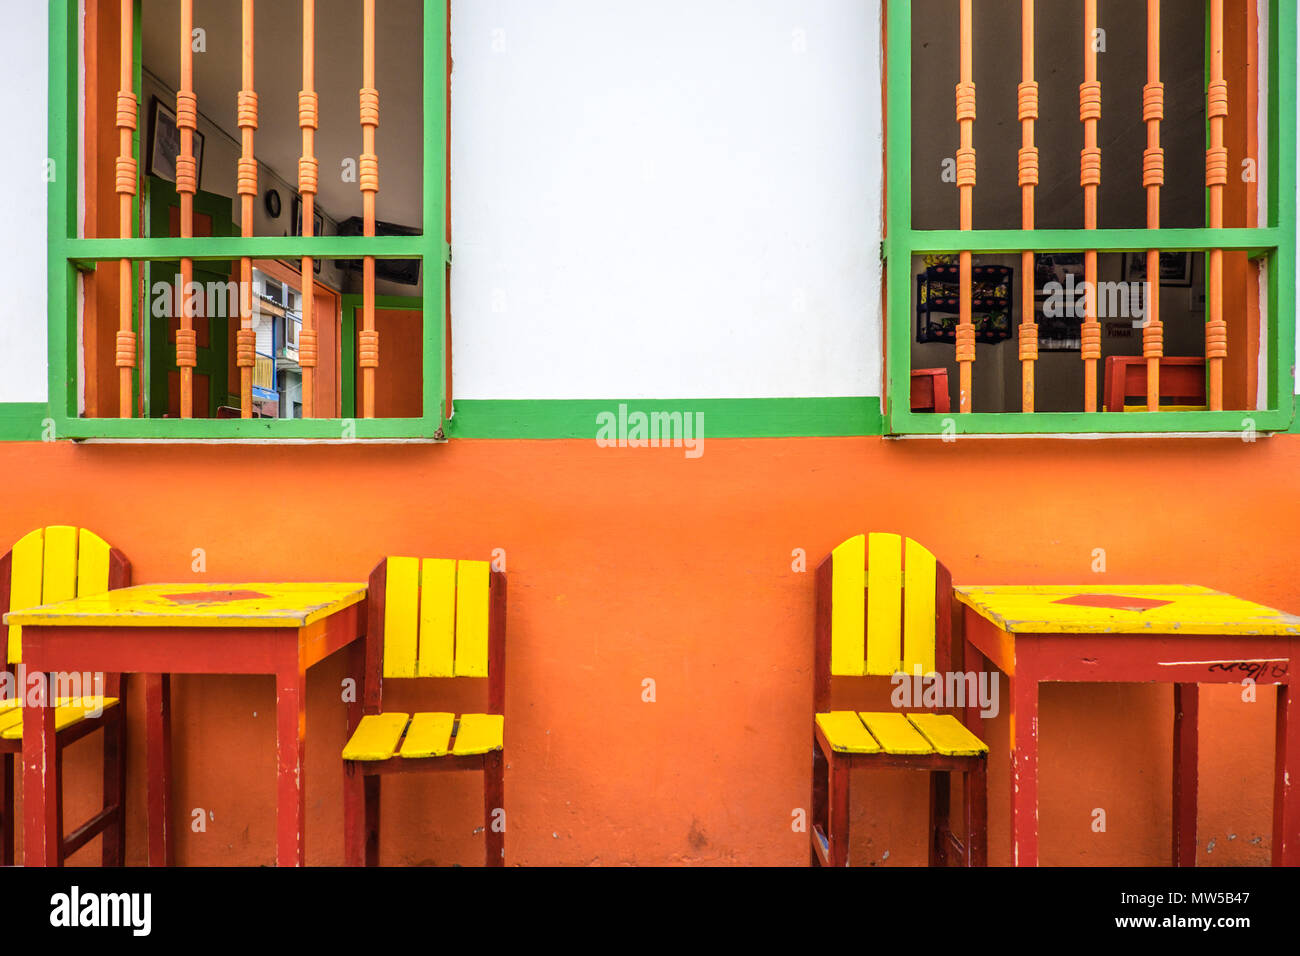 Picture of: Traditional Coffee Tables And Colourful Walls In The Streets Of Jardin Antioquia Colombia Stock Photo Alamy